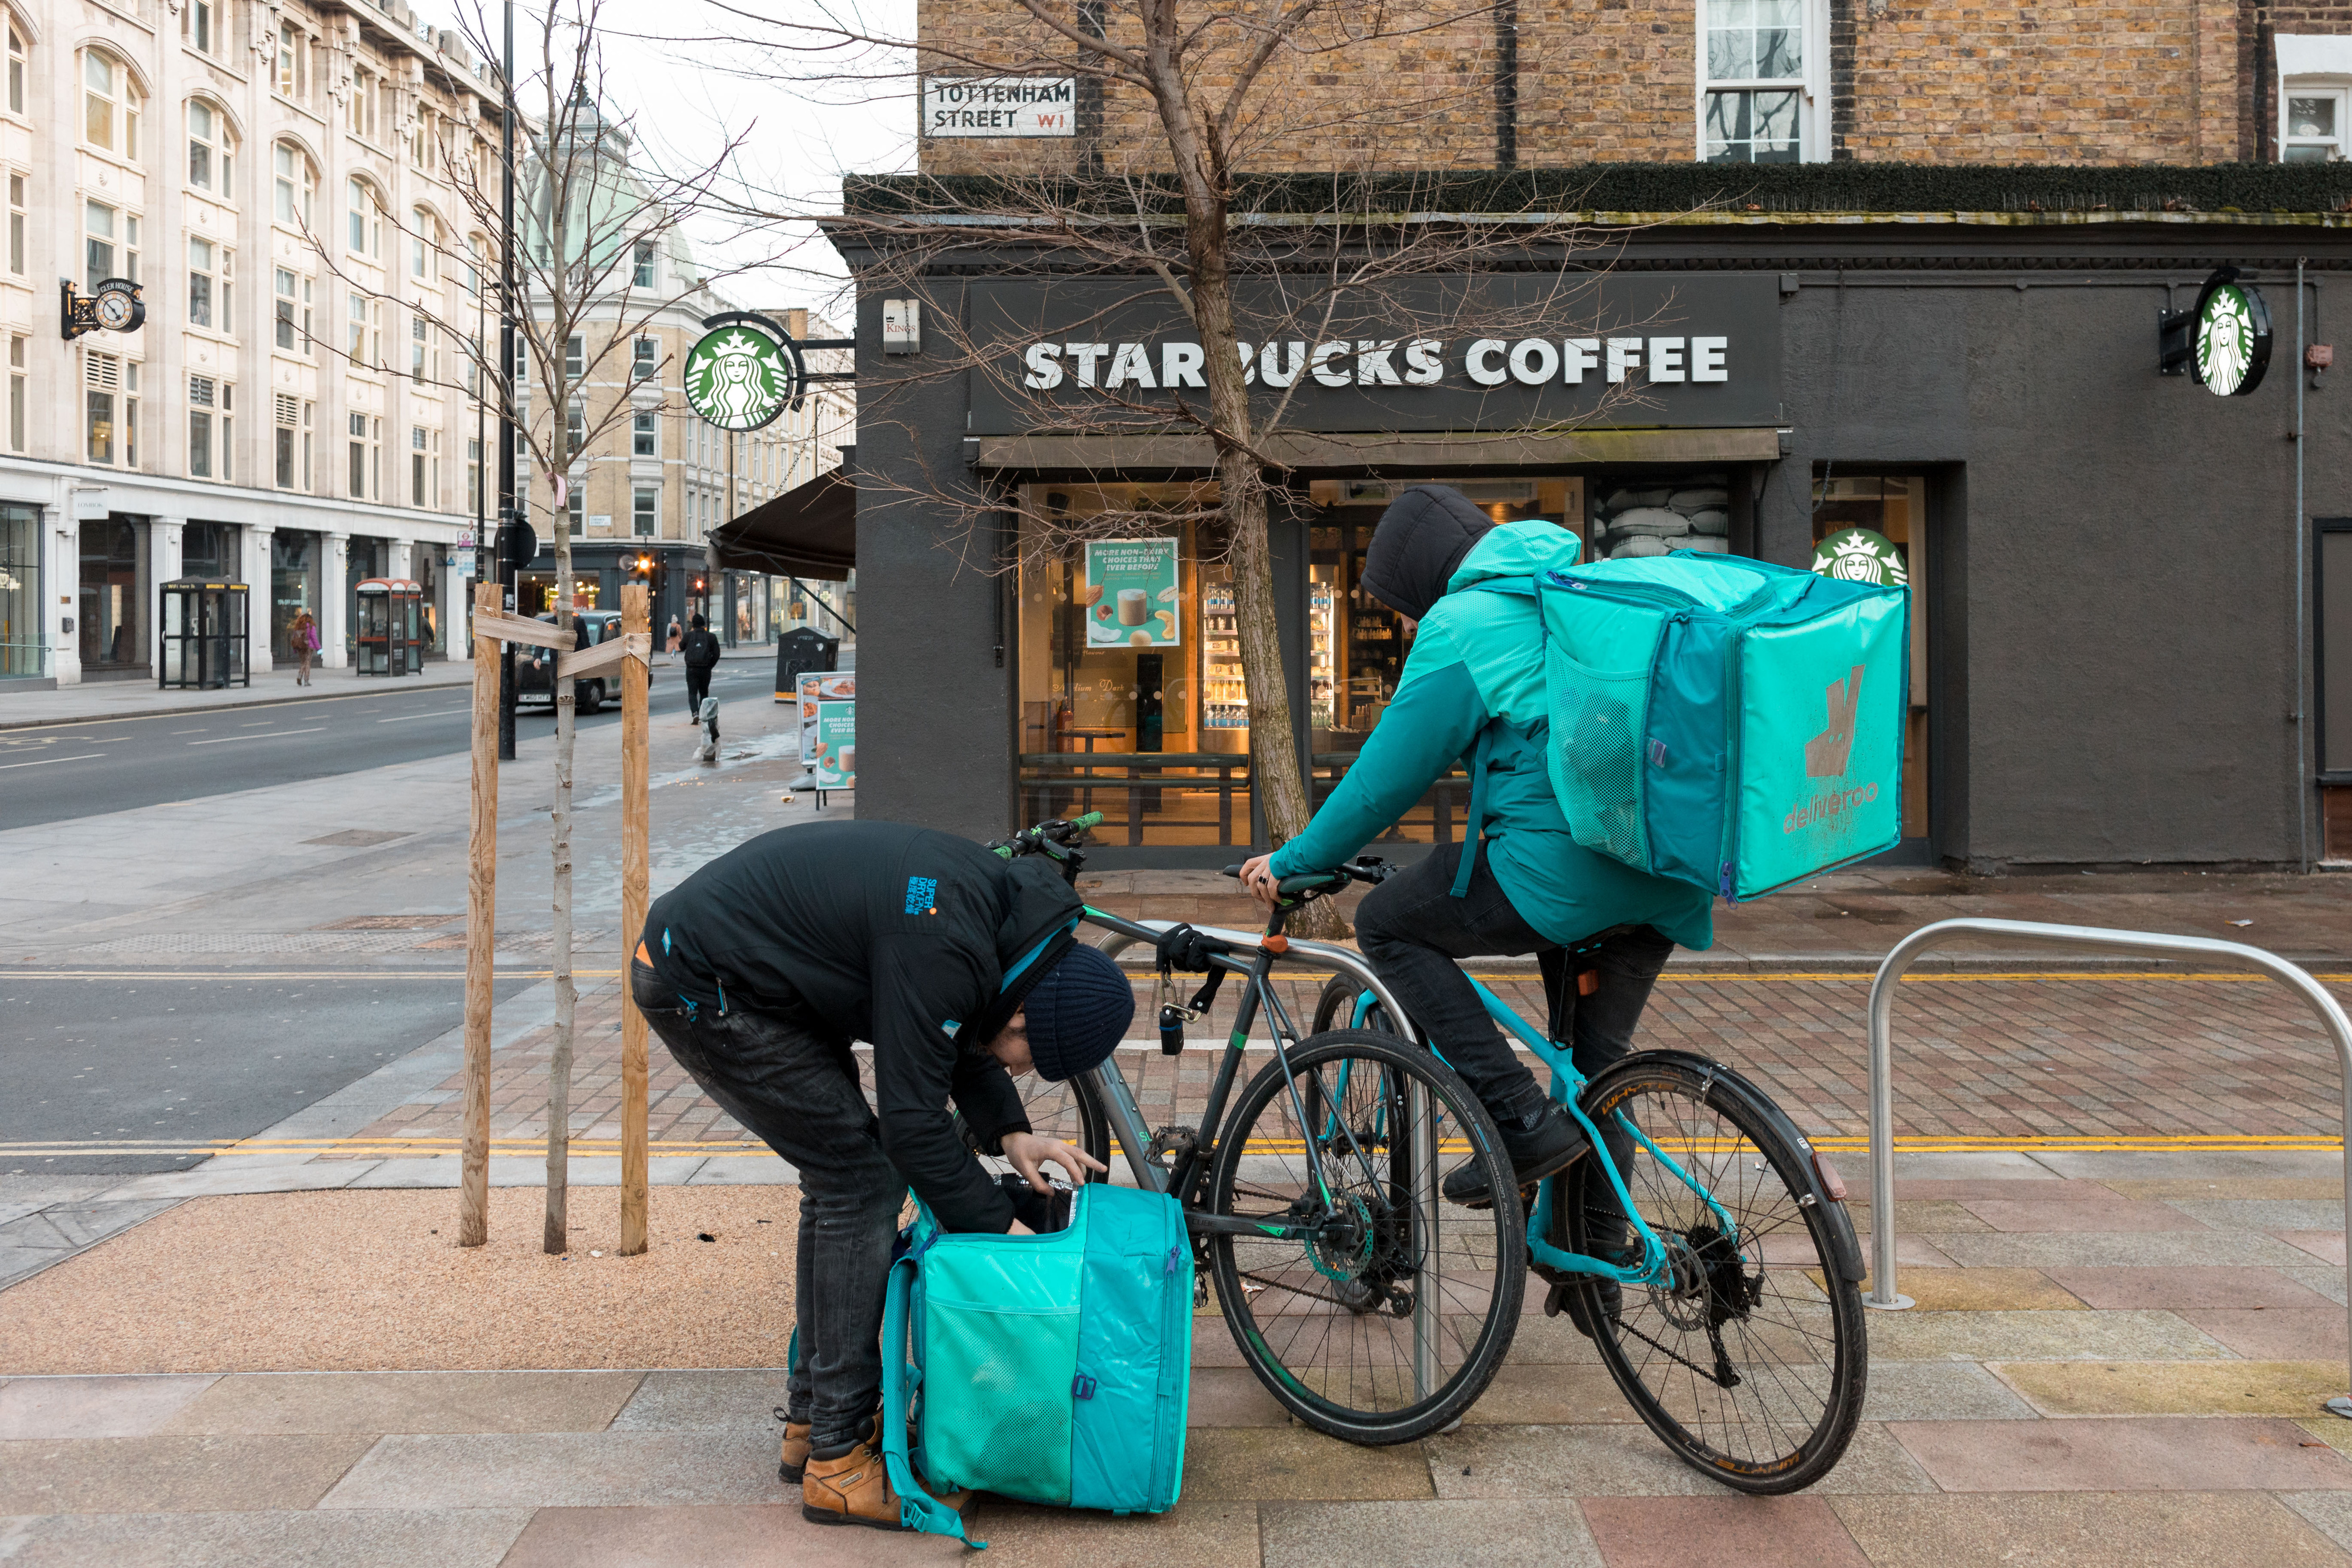 Two Deliveroo riders seen in front of a Starbucks coffee store in London